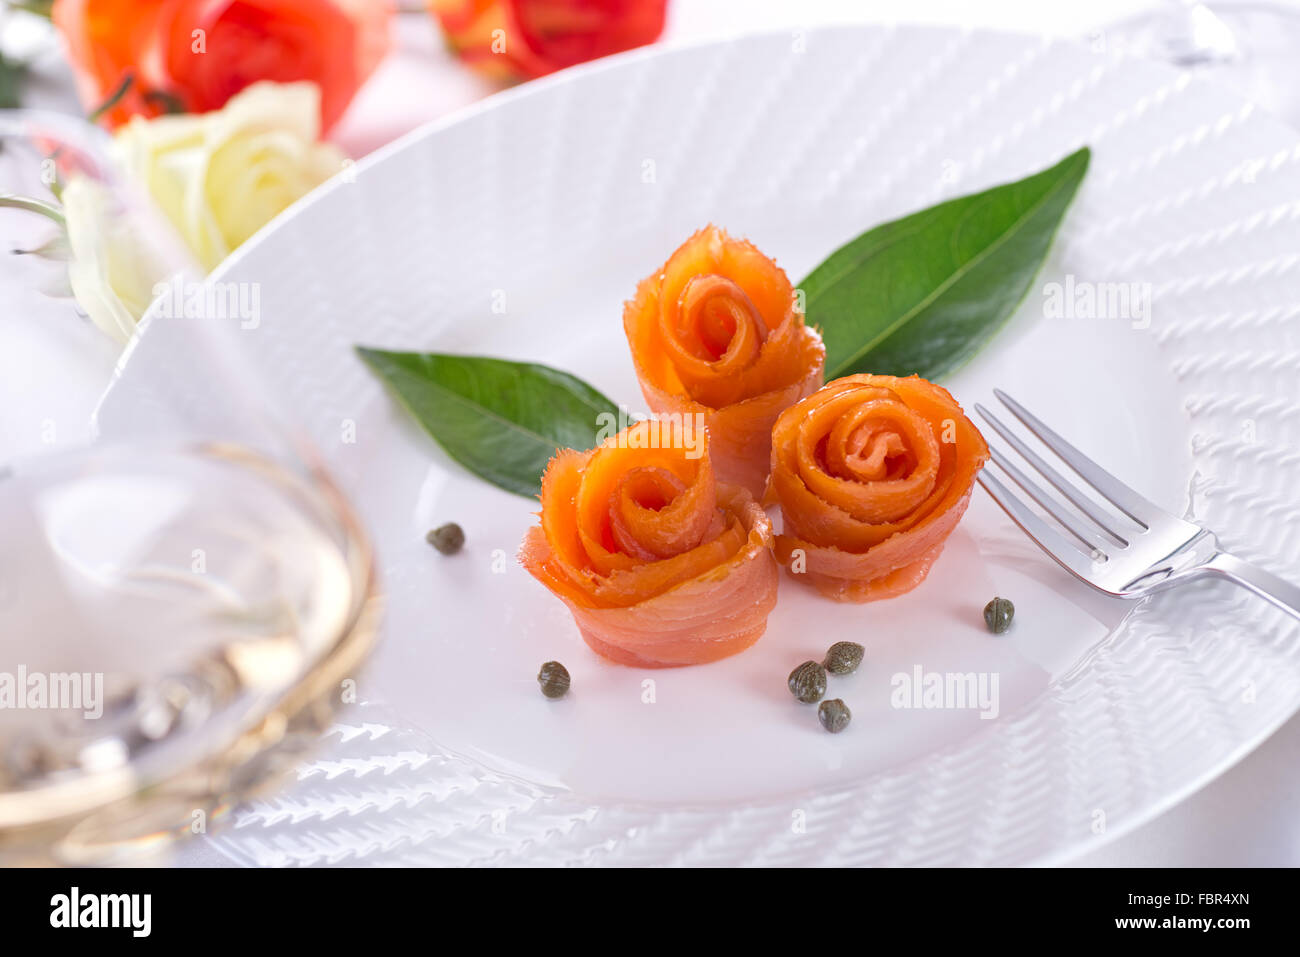 A group of delicious smoked salmon appetizers shaped like roses. - Stock Image